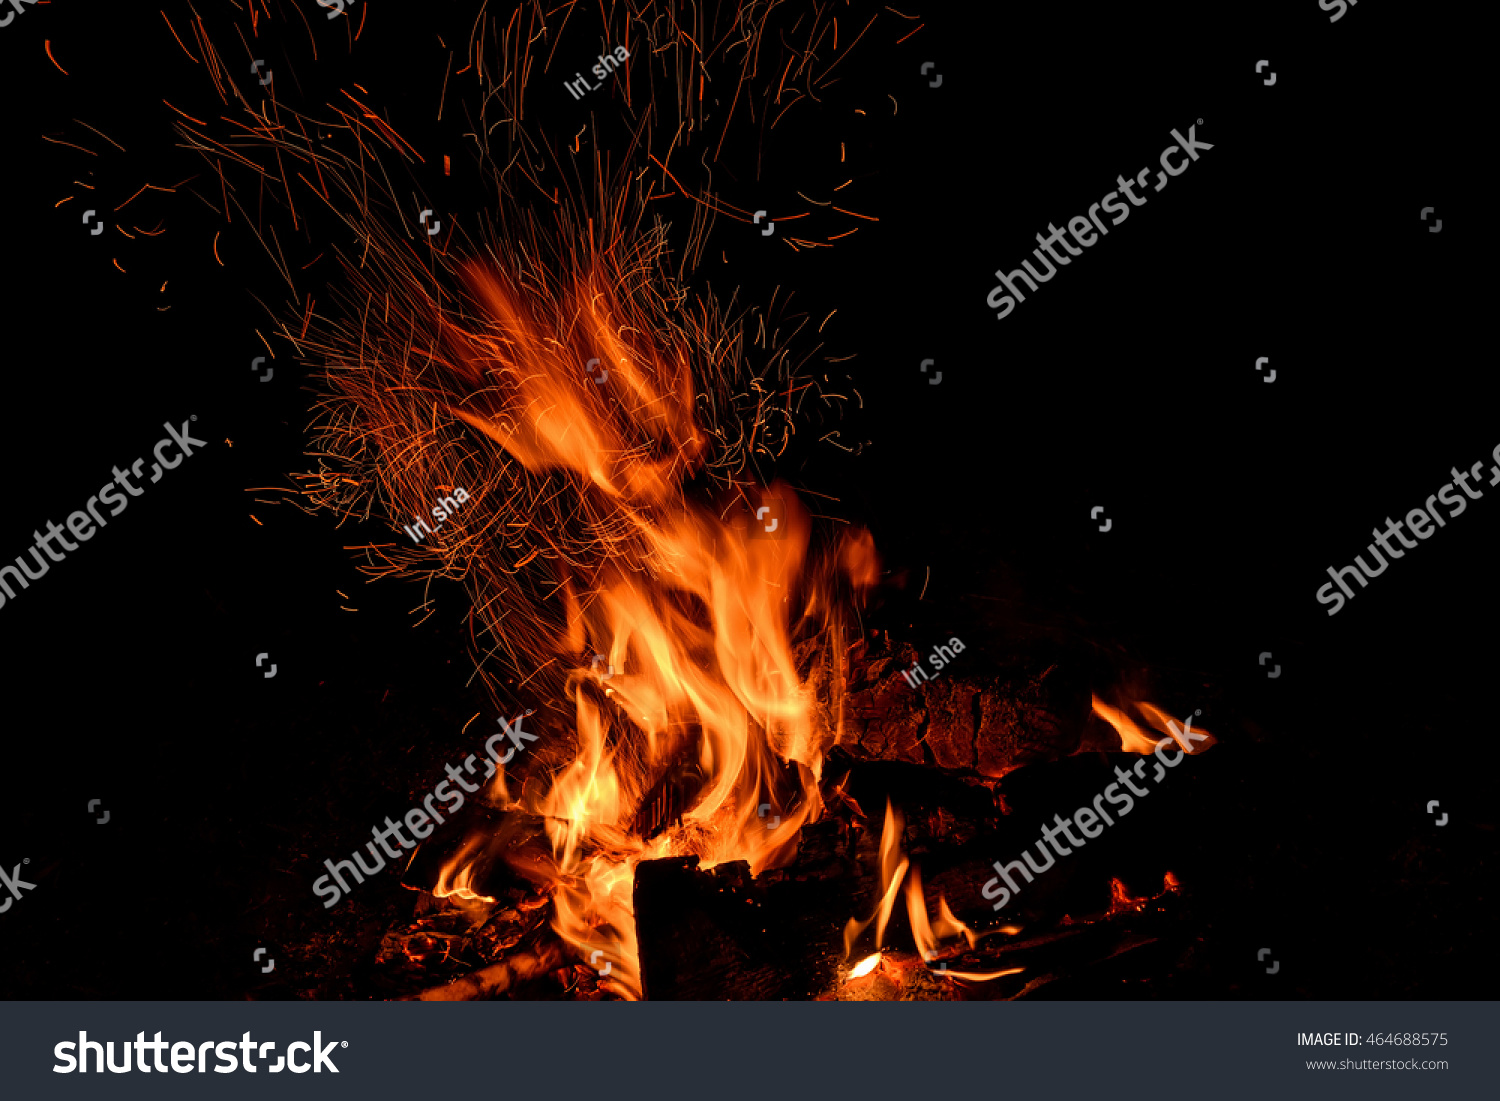 Red Orange Spurts Flames Charcoal Firewood Stock Photo 464688575 ...